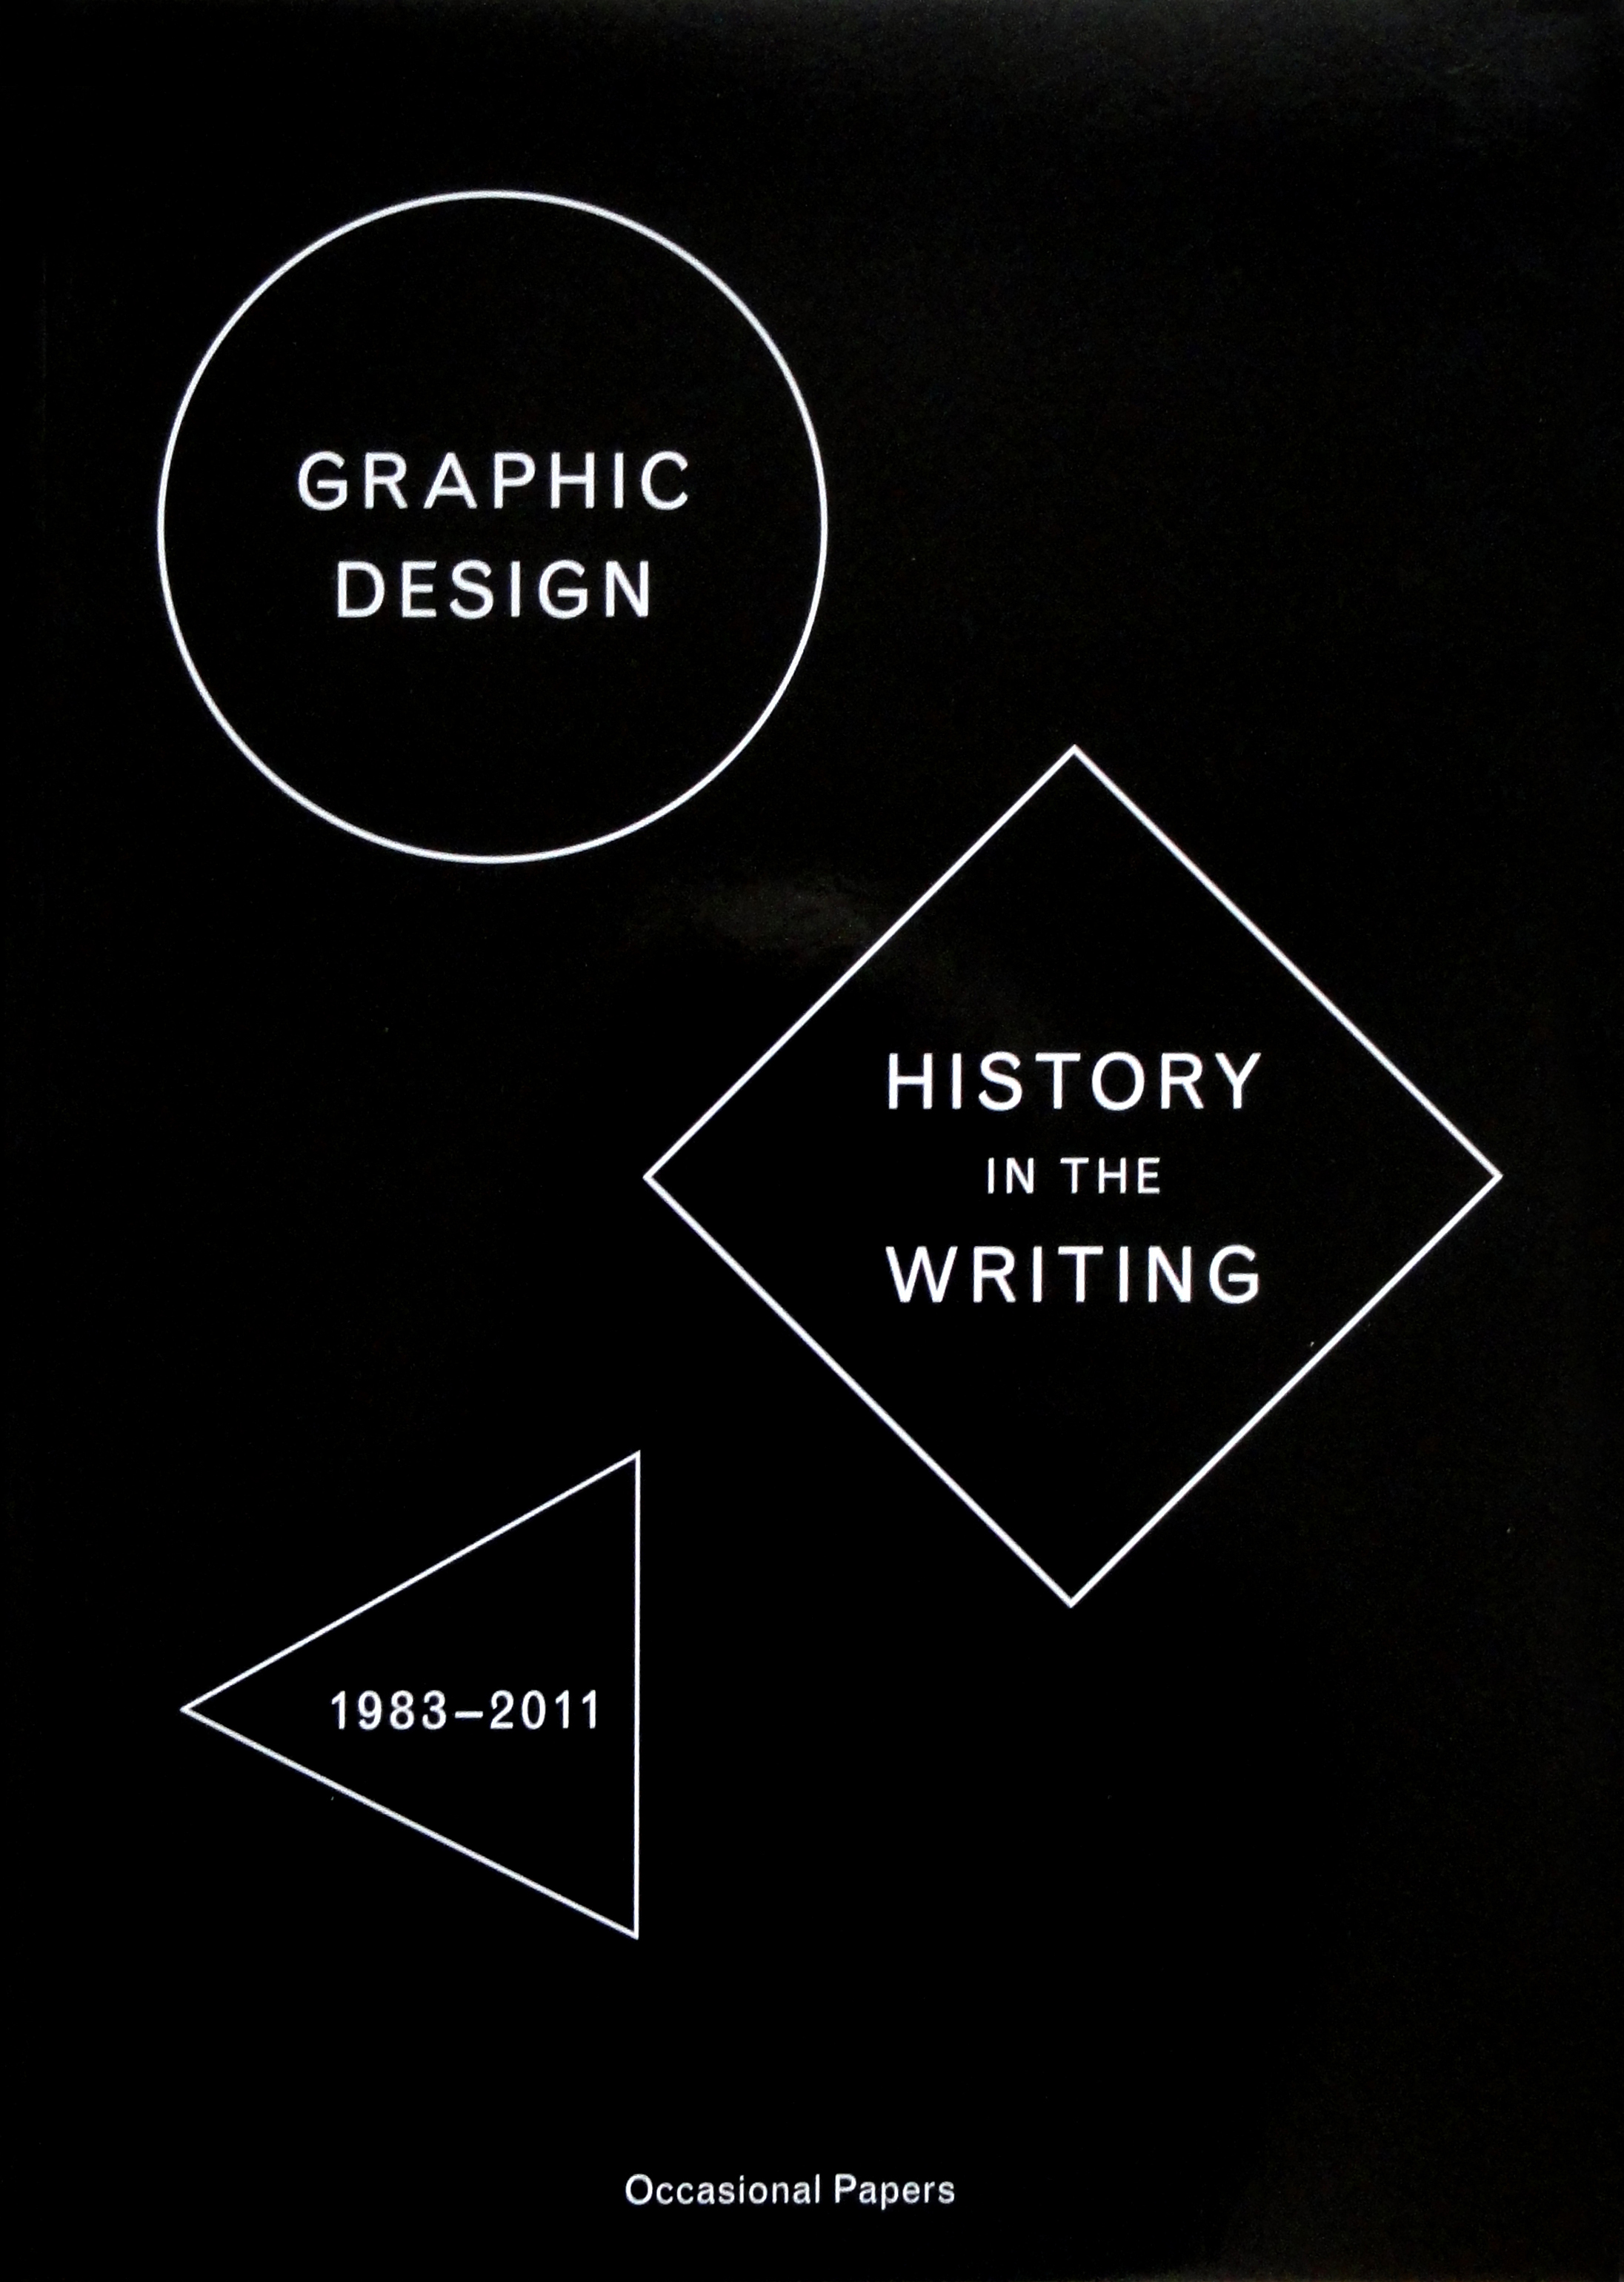 Groovy Graphic Design History In The Writing 19832011 Home Interior And Landscaping Ologienasavecom